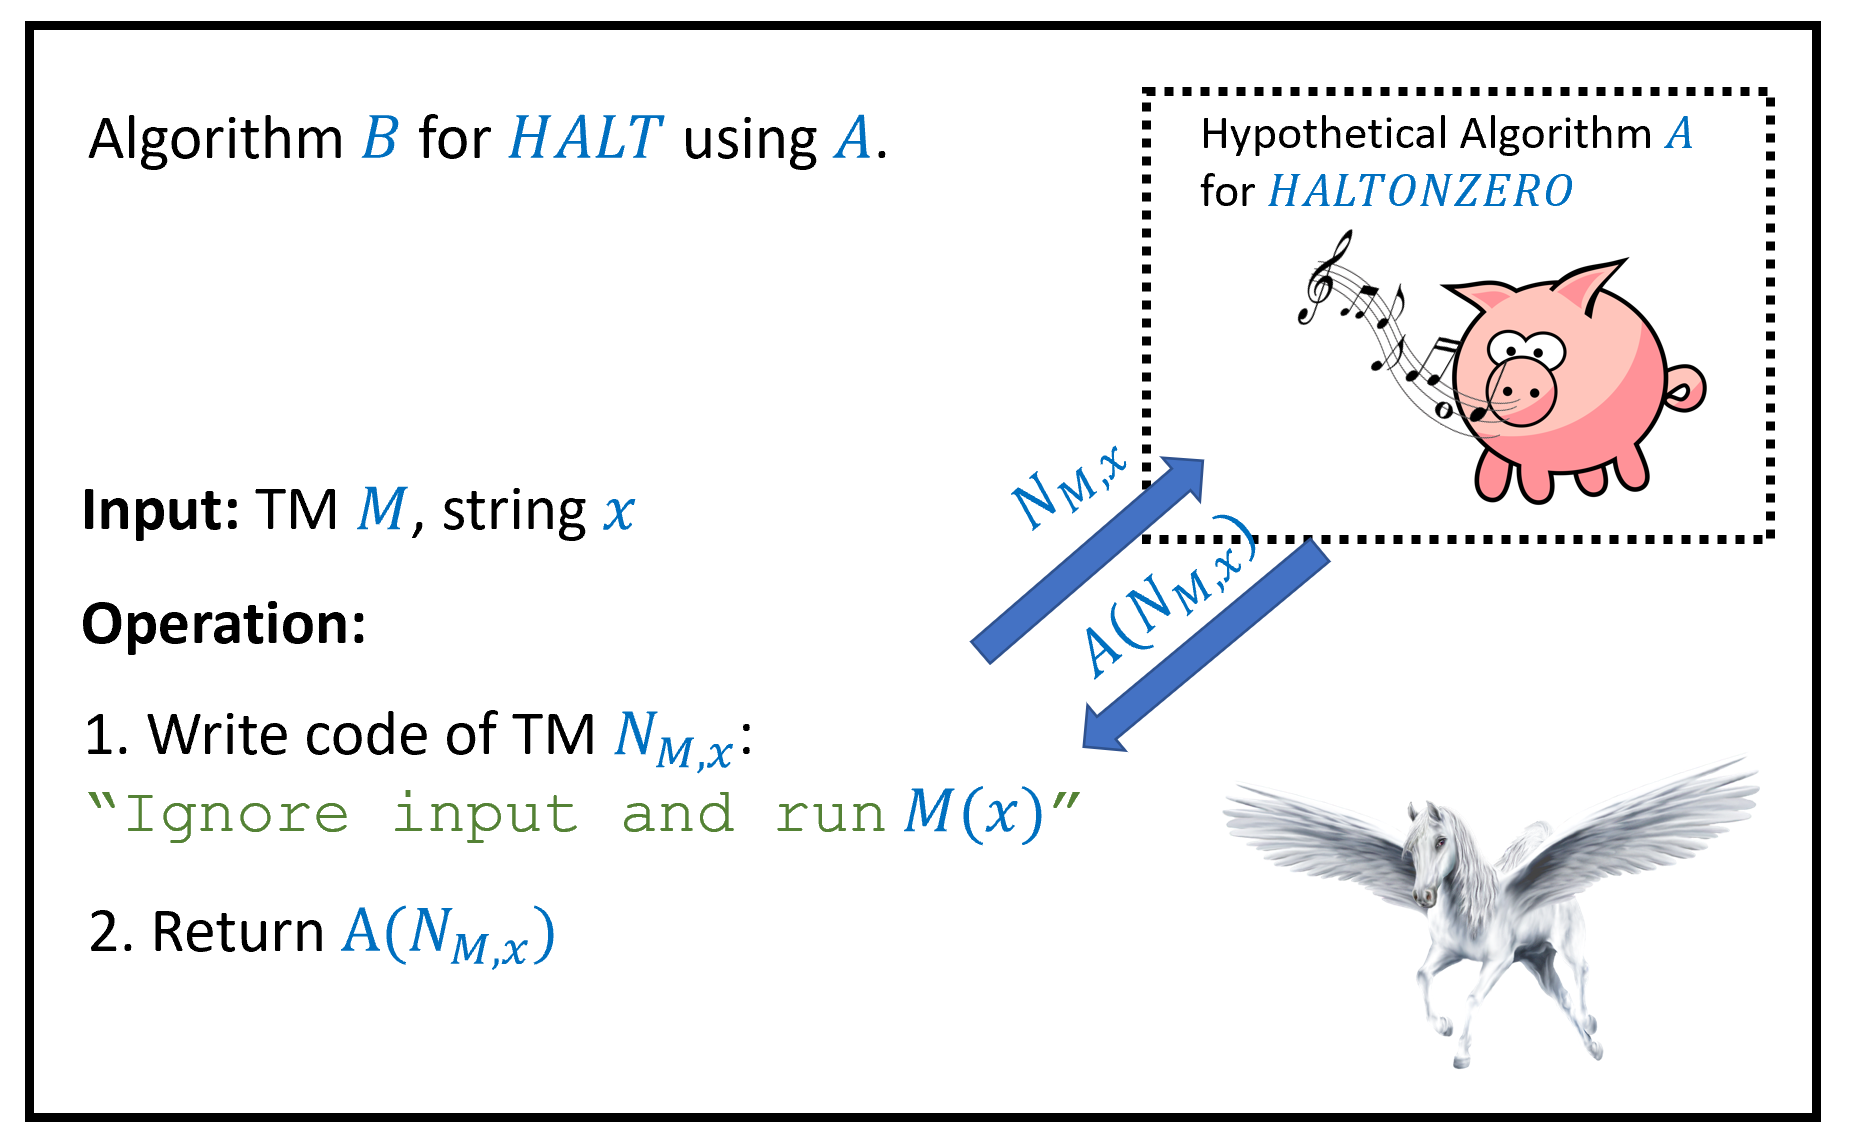 """To prove , we show that \ensuremath{\mathit{HALTONZERO}} is uncomputable by giving a reduction from the task of computing \ensuremath{\mathit{HALT}} to the task of computing \ensuremath{\mathit{HALTONZERO}}. This shows that if there was a hypothetical algorithm A computing \ensuremath{\mathit{HALTONZERO}}, then there would be an algorithm B computing \ensuremath{\mathit{HALT}}, contradicting . Since neither A nor B actually exists, this is an example of an implication of the form """"if pigs could whistle then horses could fly""""."""